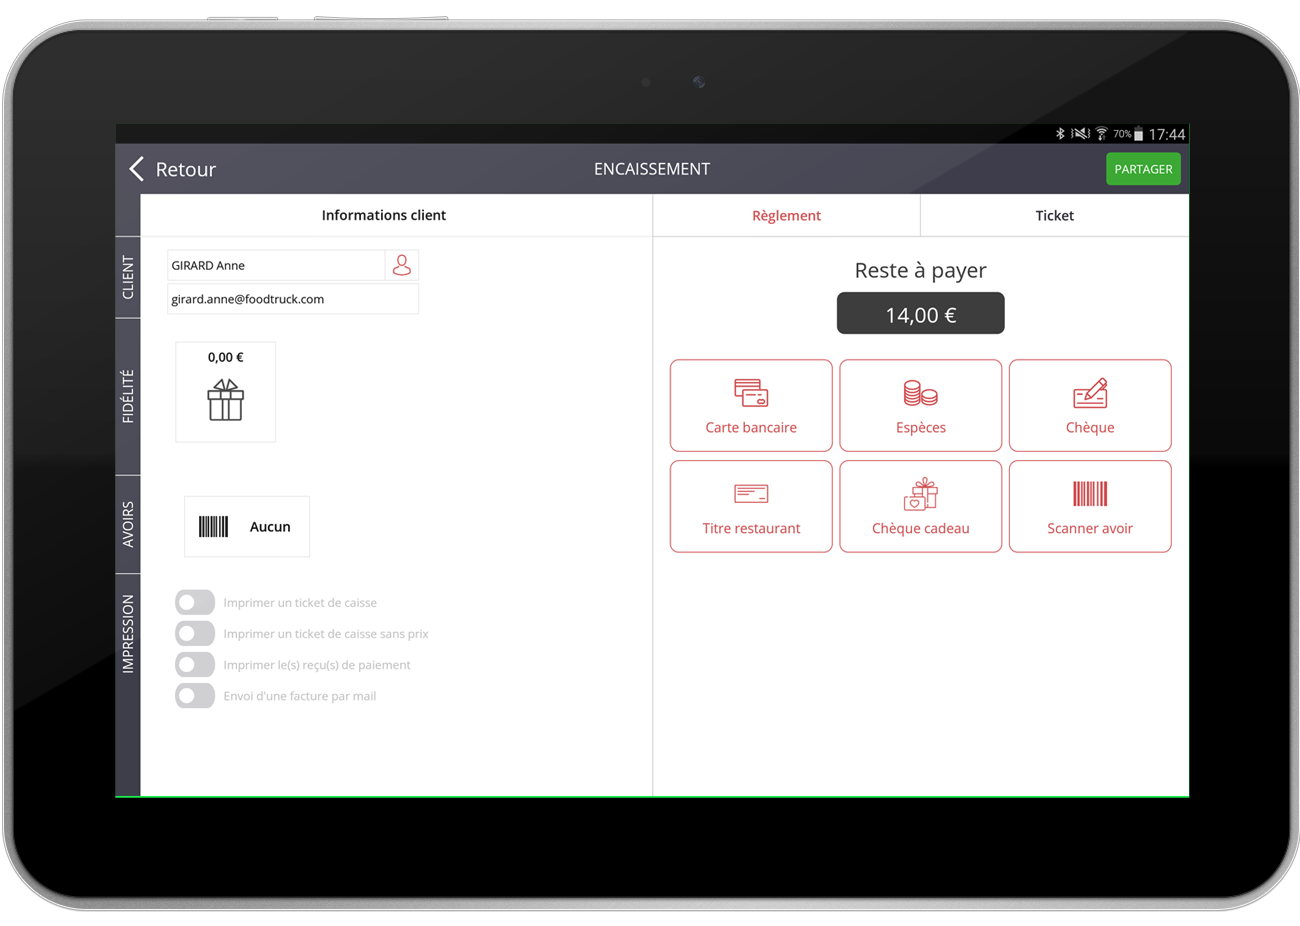 Manage payments on tablet